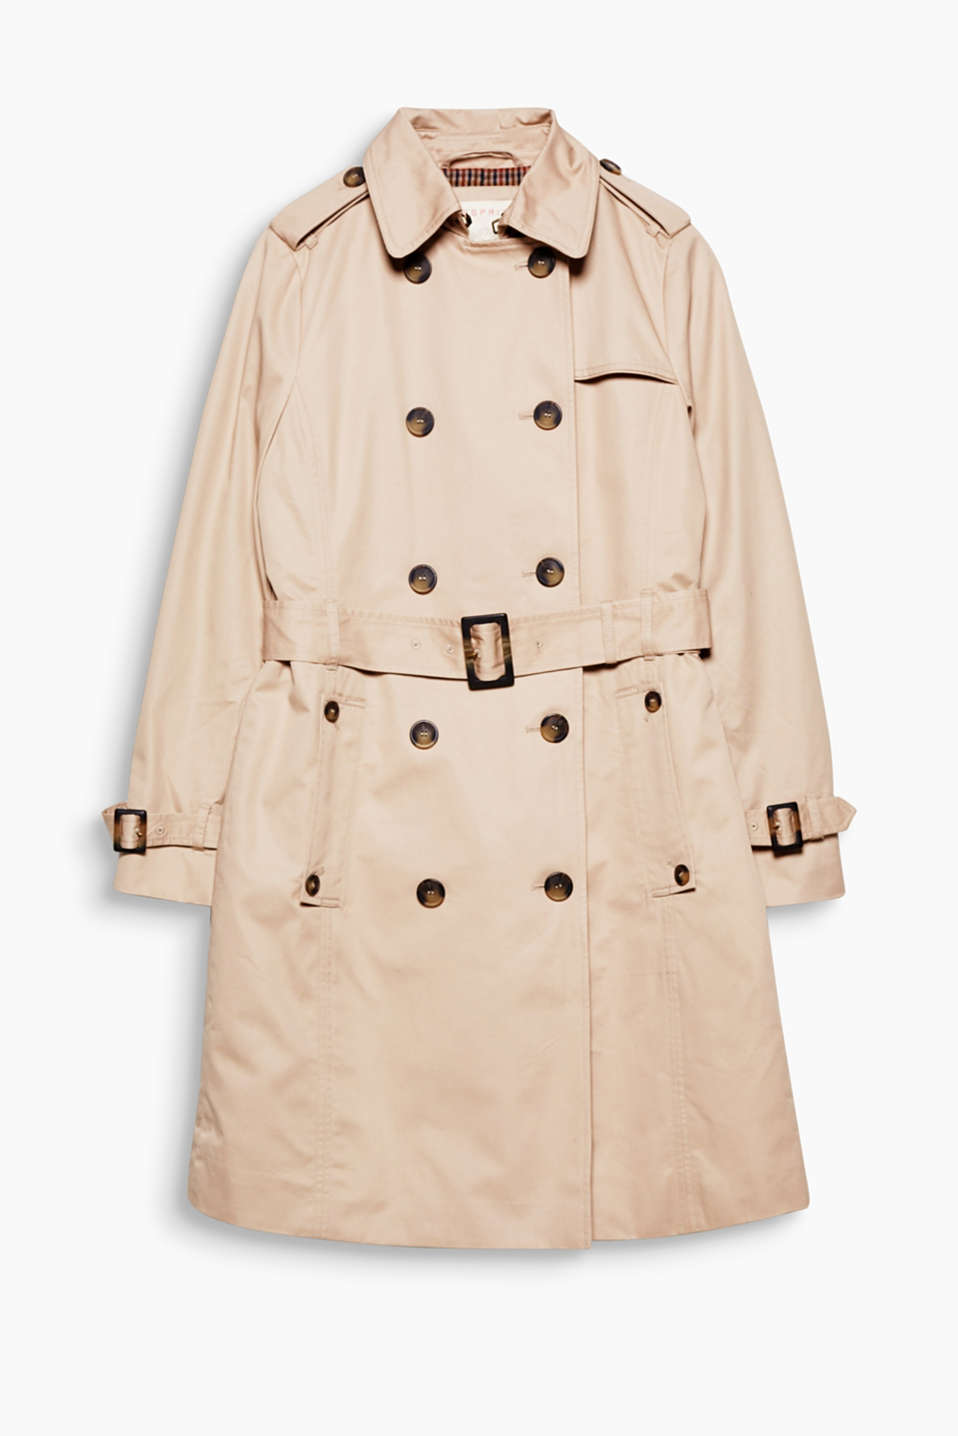 A classic braced against the weather: this double-breasted trench coat is now great for the autumn thanks to the quilted lining!